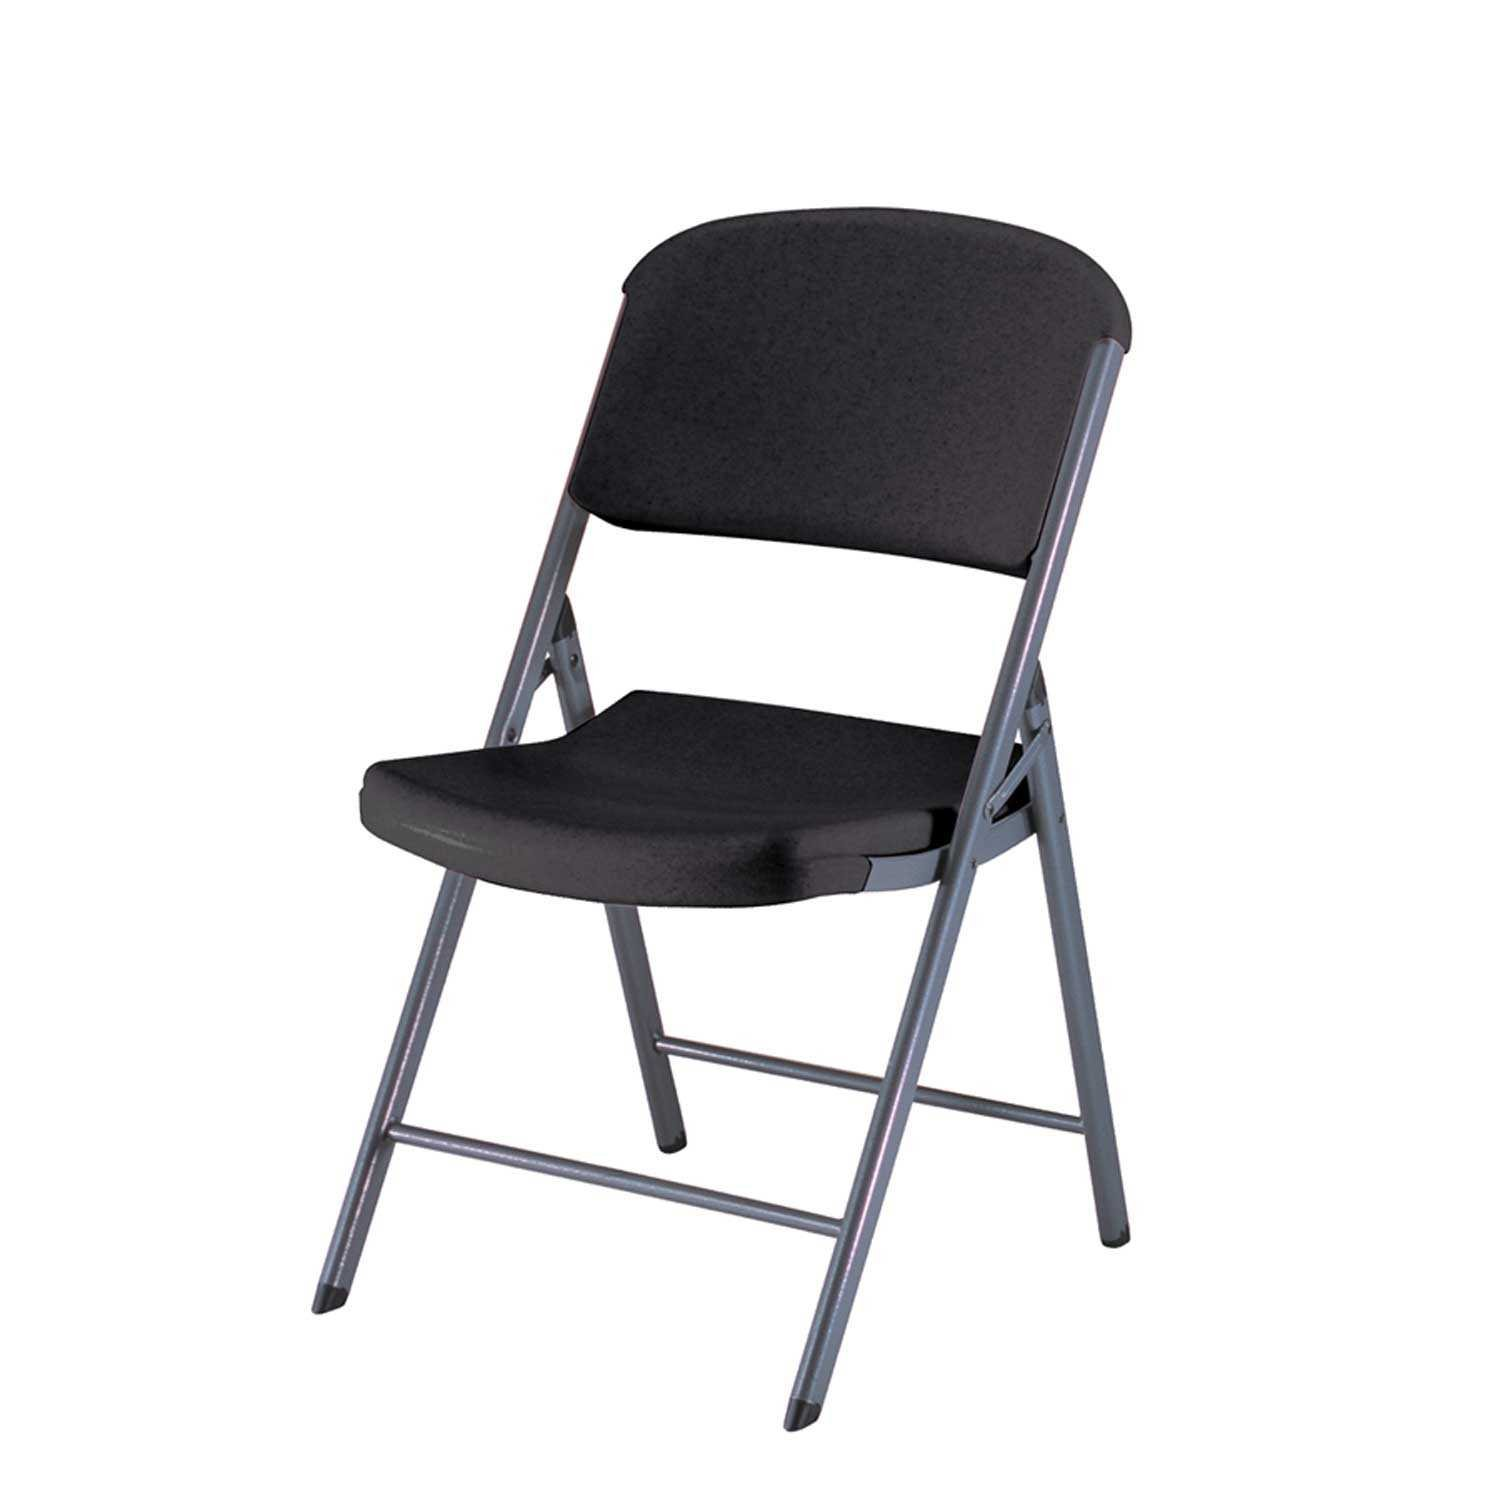 Lifetime Classic mercial Folding Chair Black with Gray